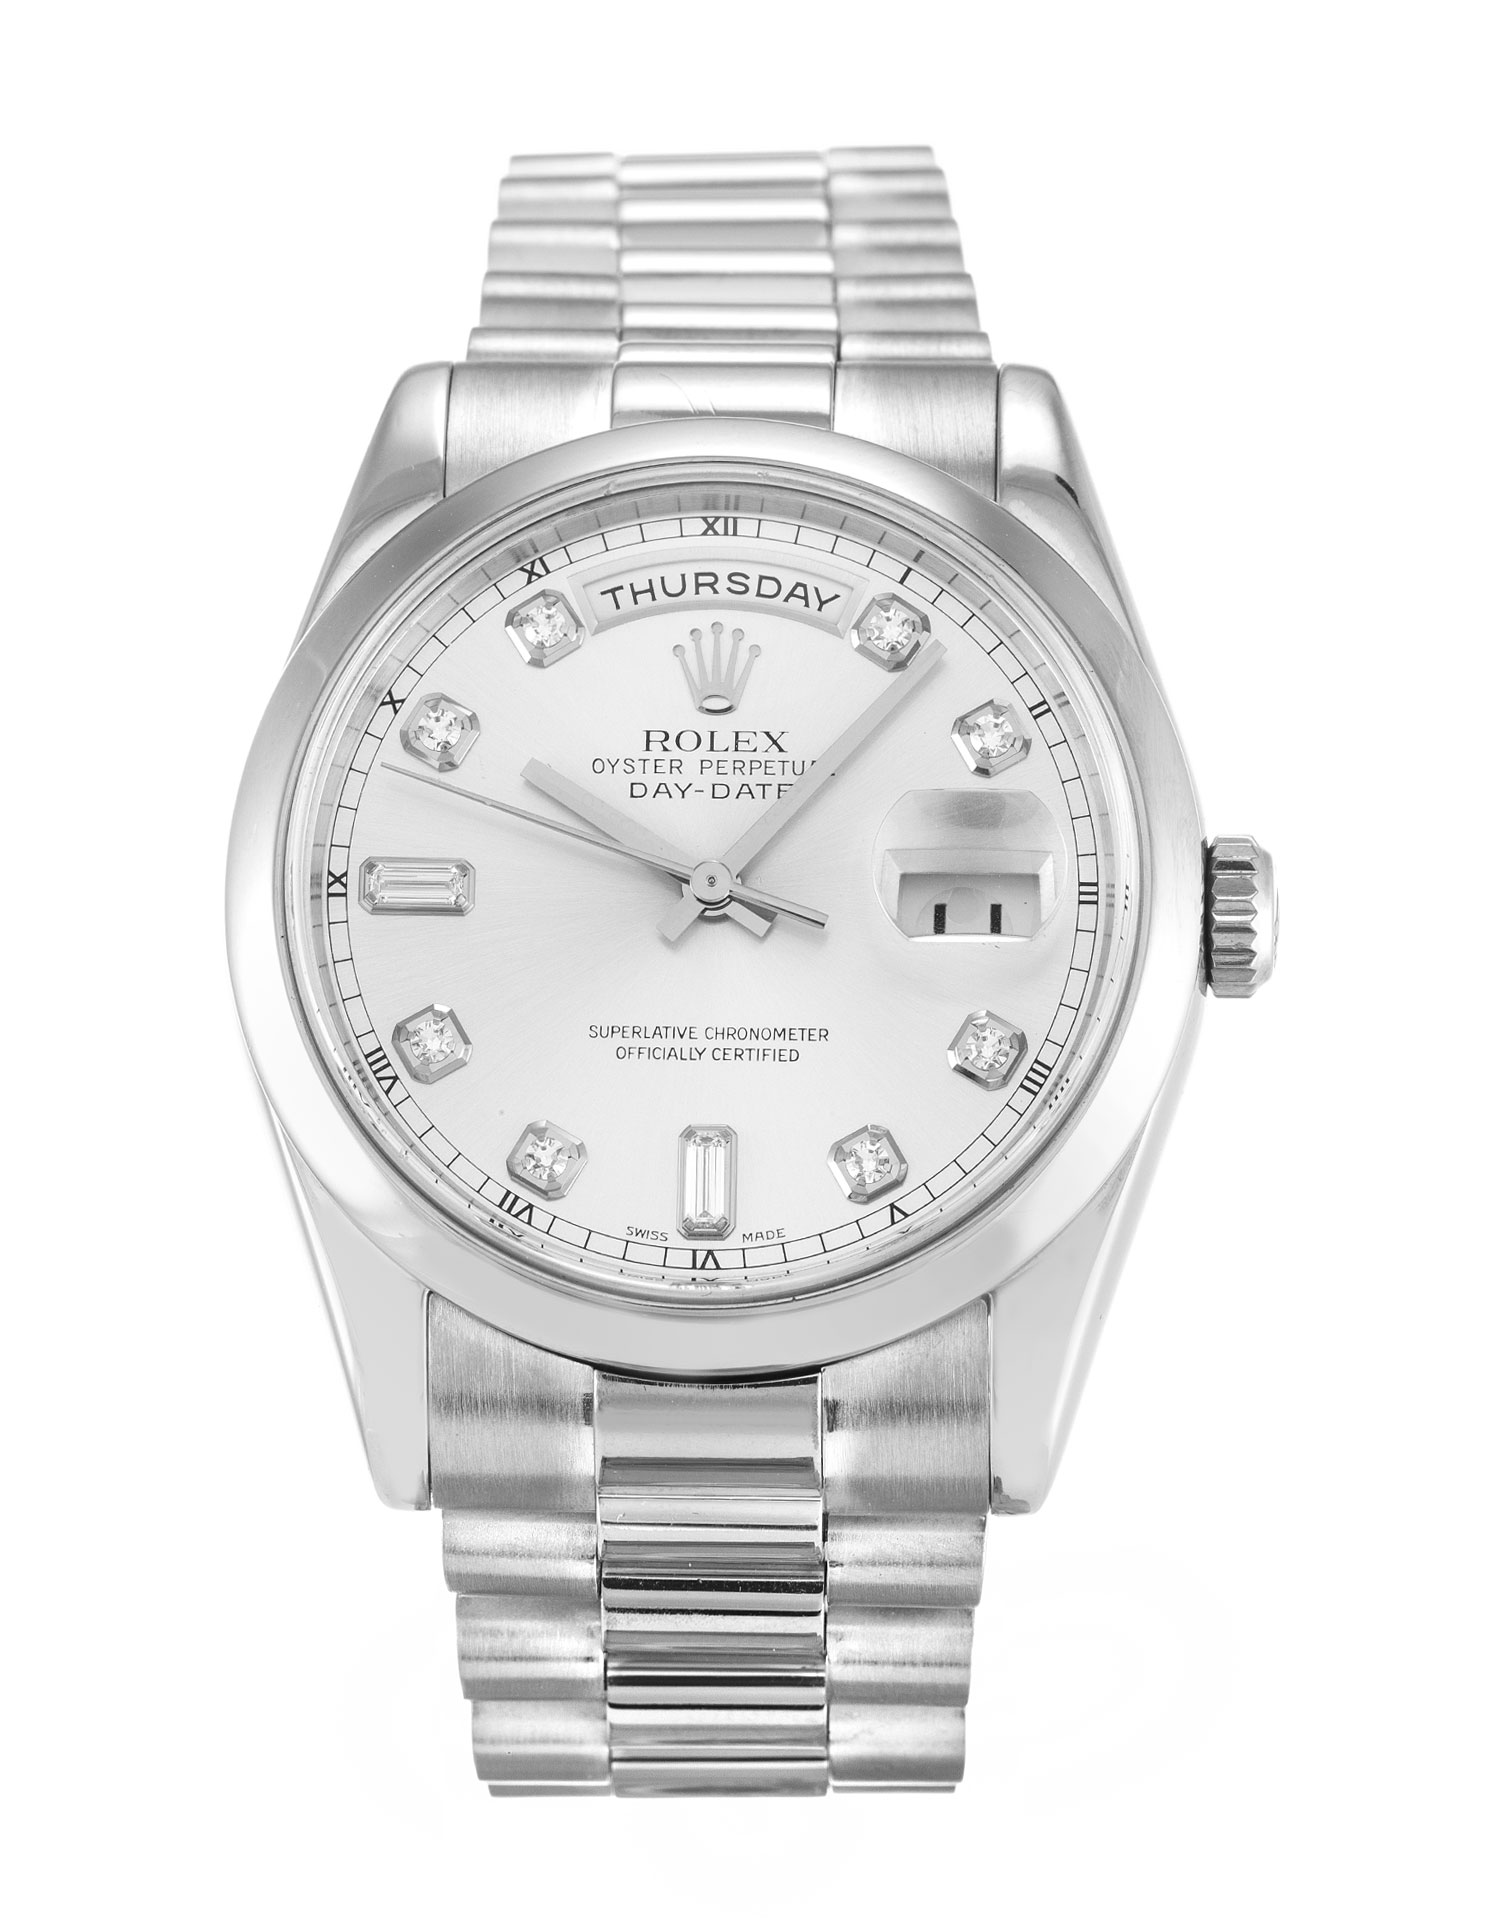 Rolex Day-date 118209 Mens 36 Mm White Gold Case Automatic Movement – iapac.to